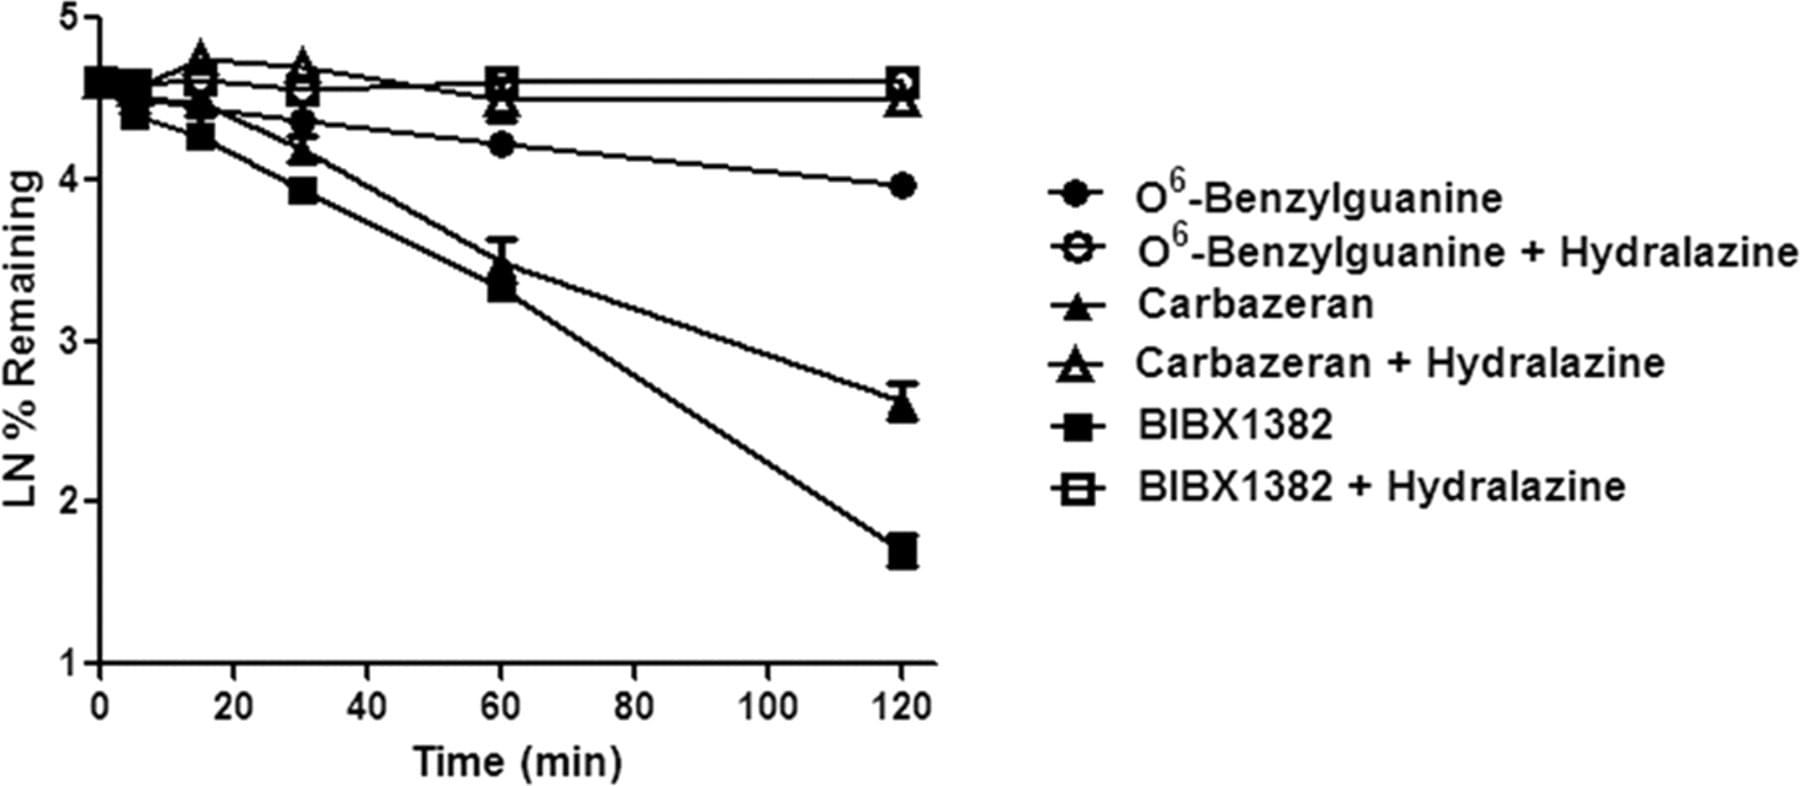 Hepatocyte stability profile of three compounds<sup>2</sup>